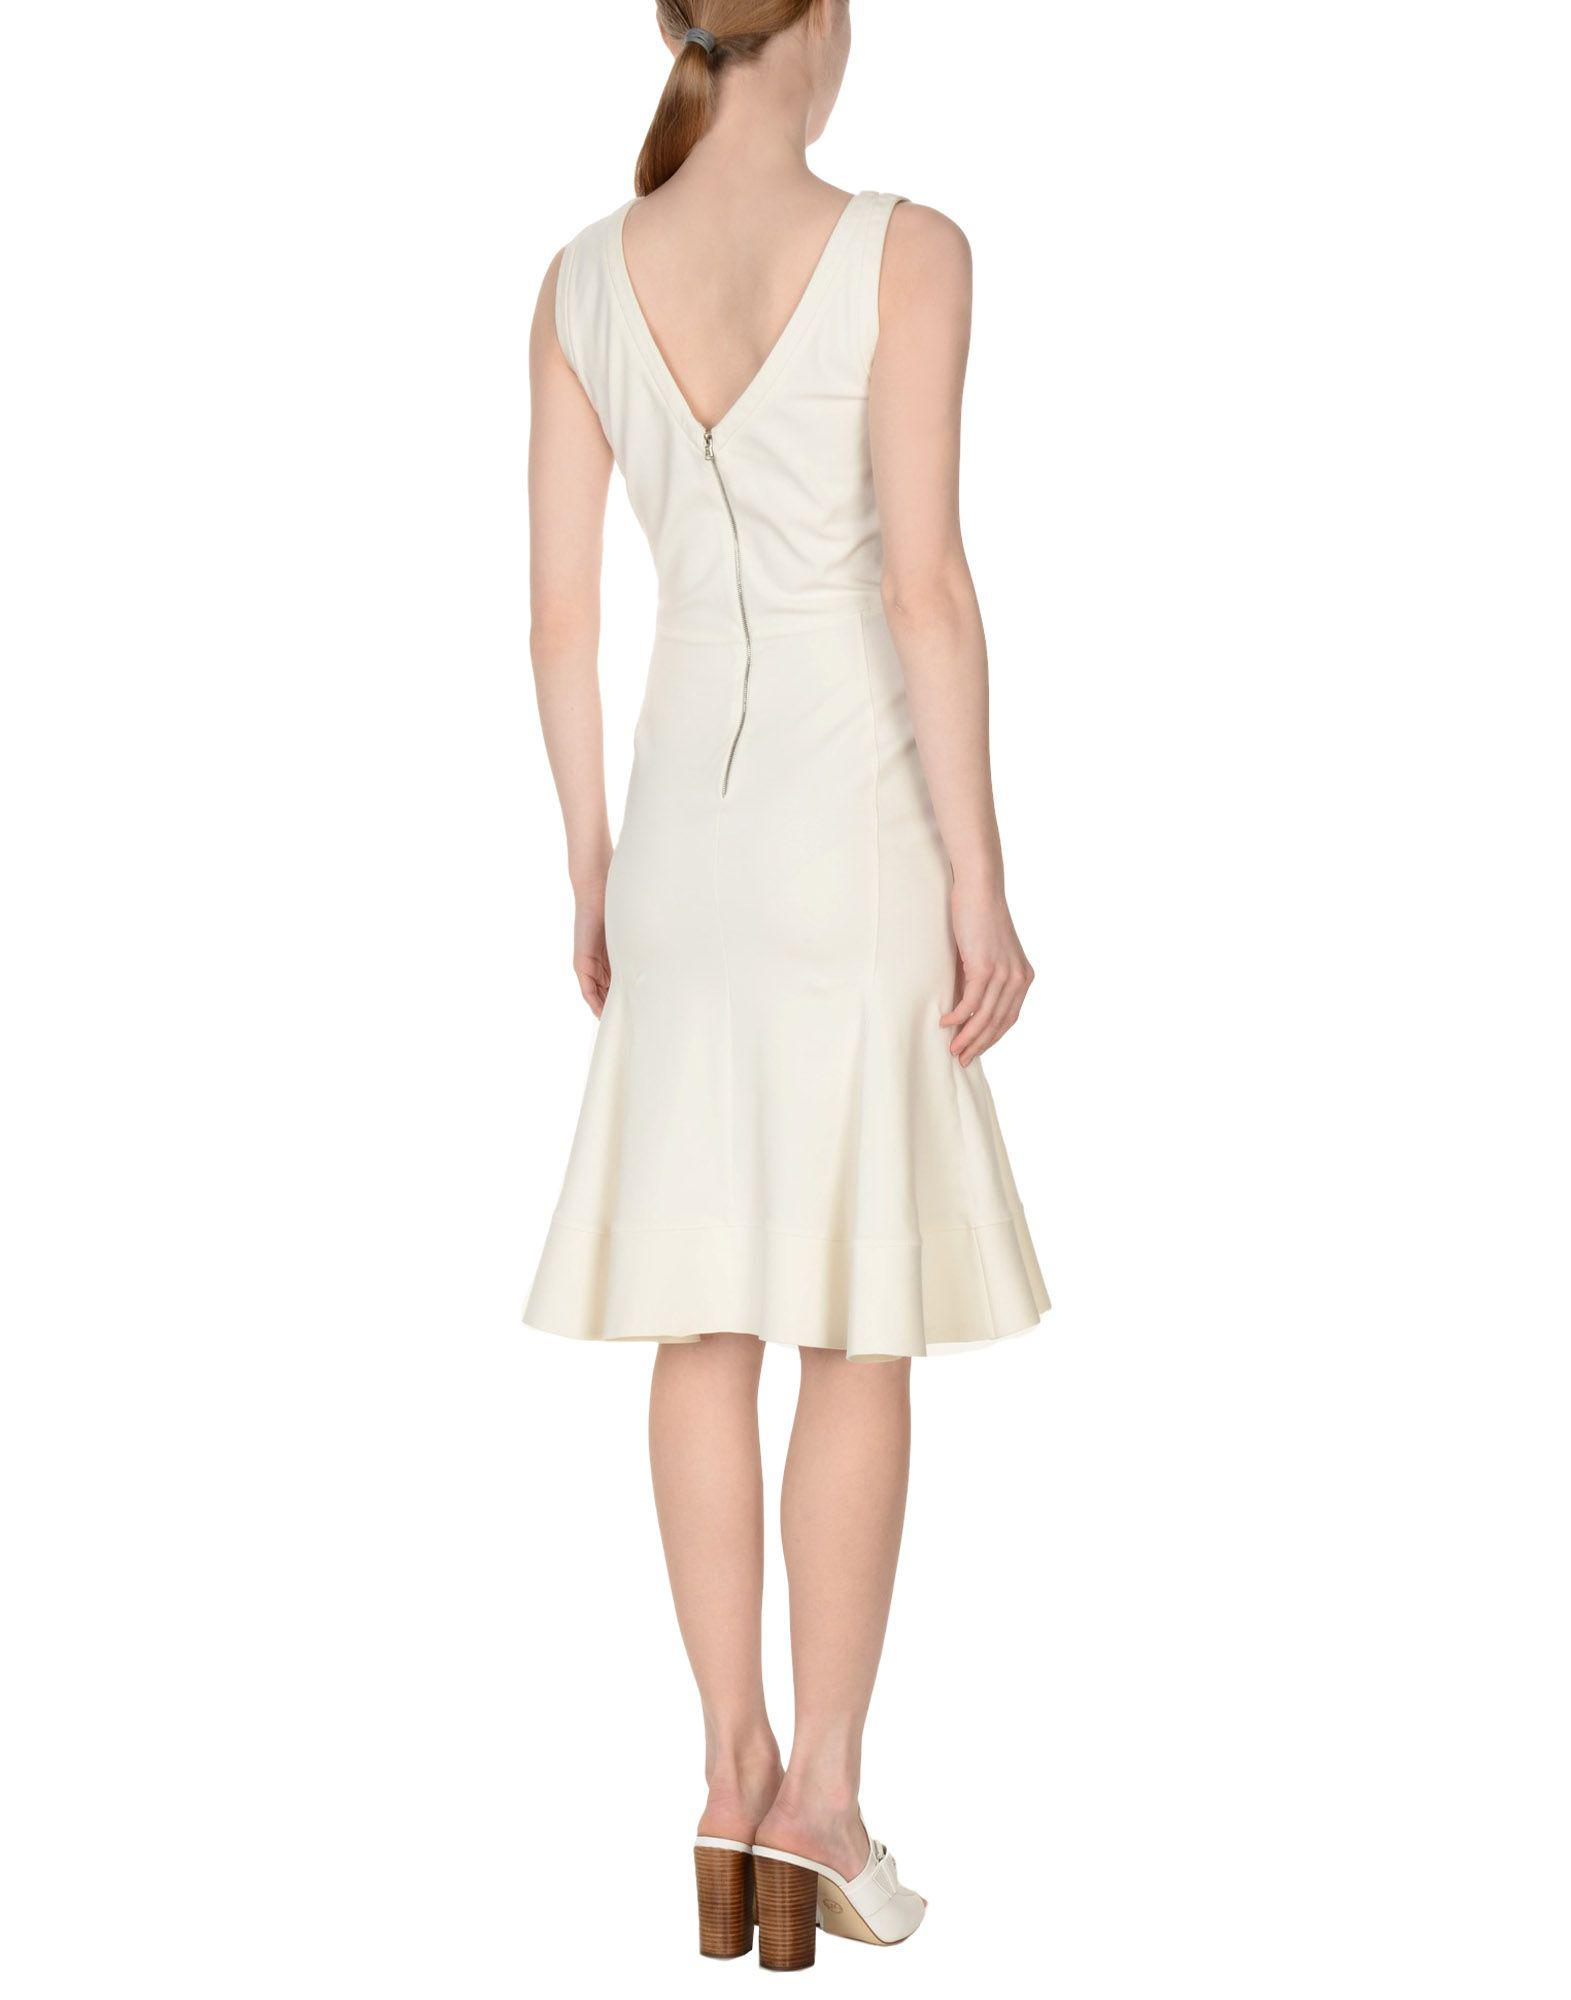 eb73af8f432 Lyst - Antonio Berardi Knee-length Dress in White